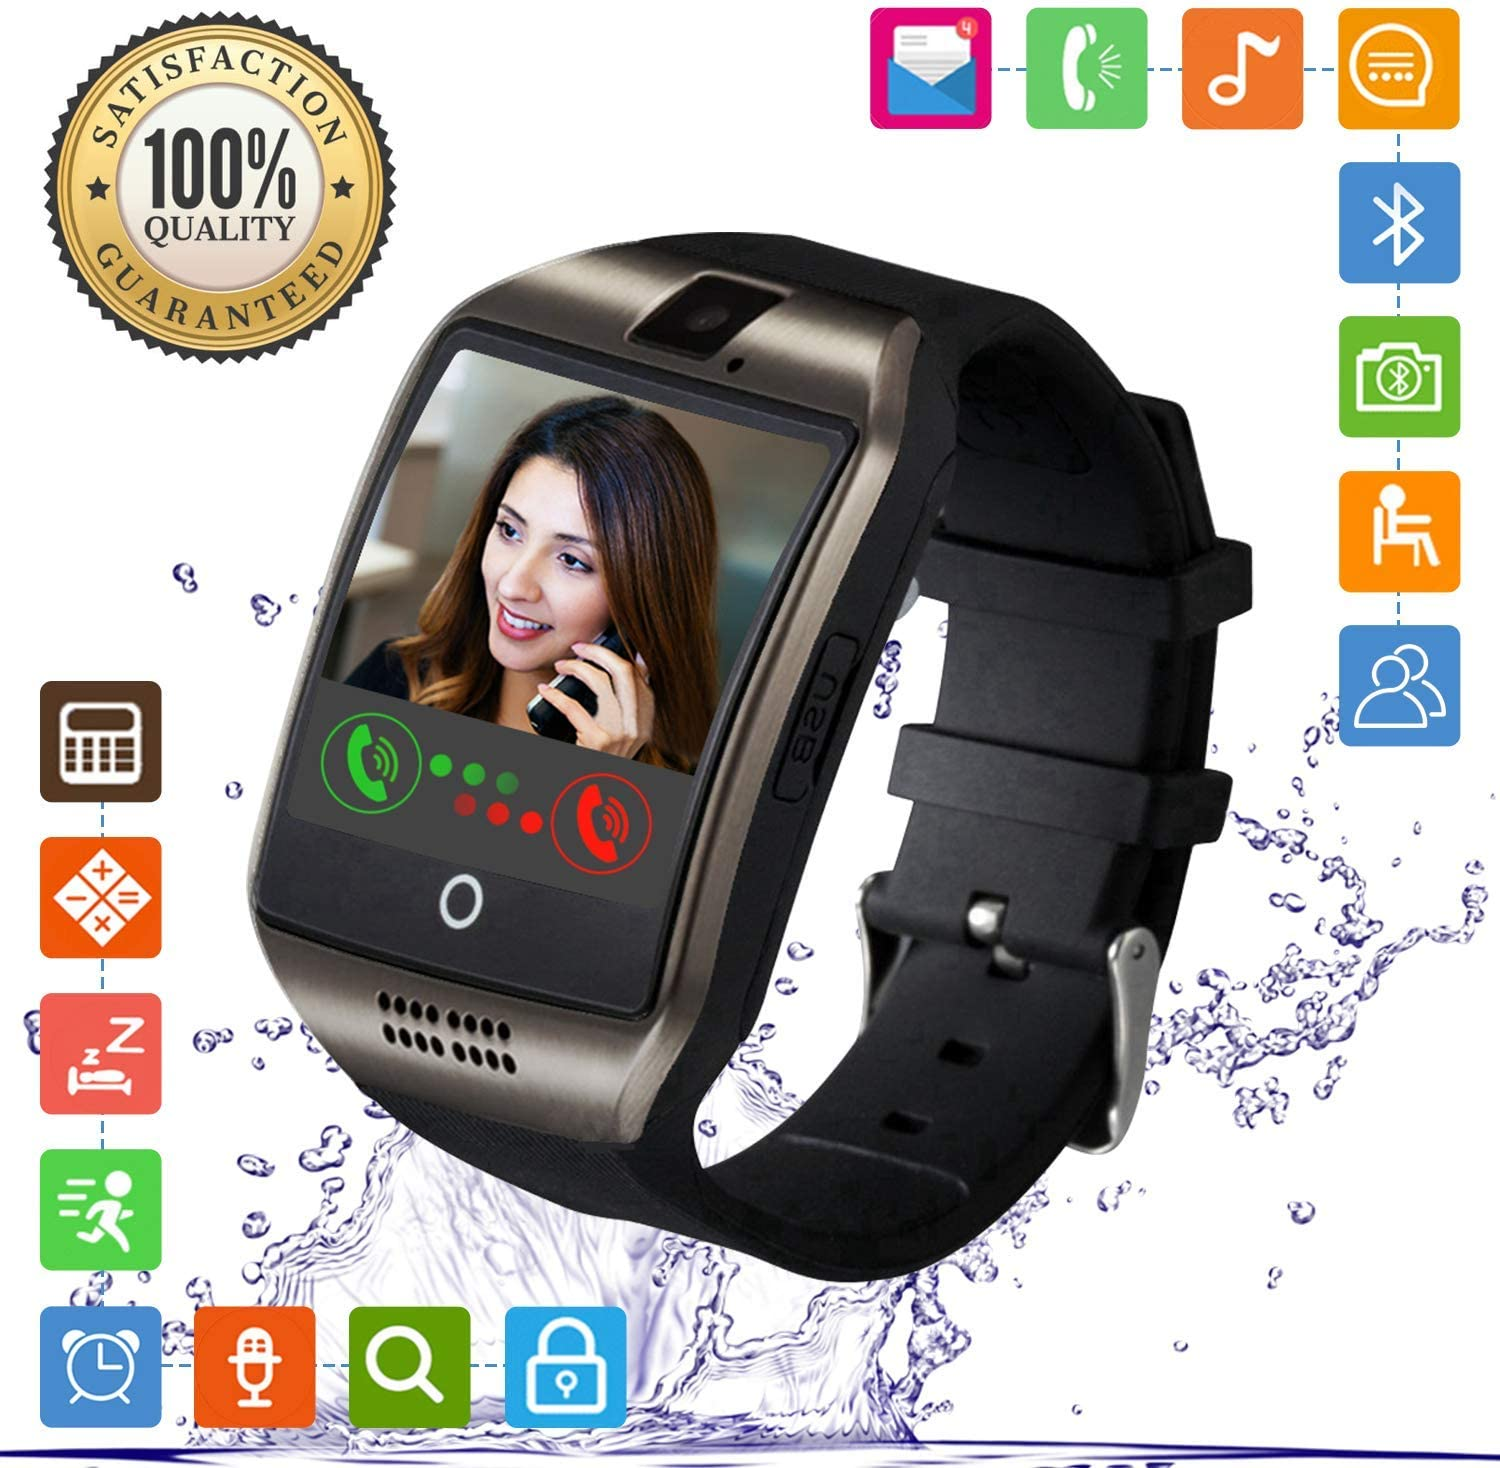 FENHOO Smart Watch Bluetooth Smartwatch With Touch Screen Camera SIM Card Slot for Calling Message Pedometer Music Play Smart Watches Compatible